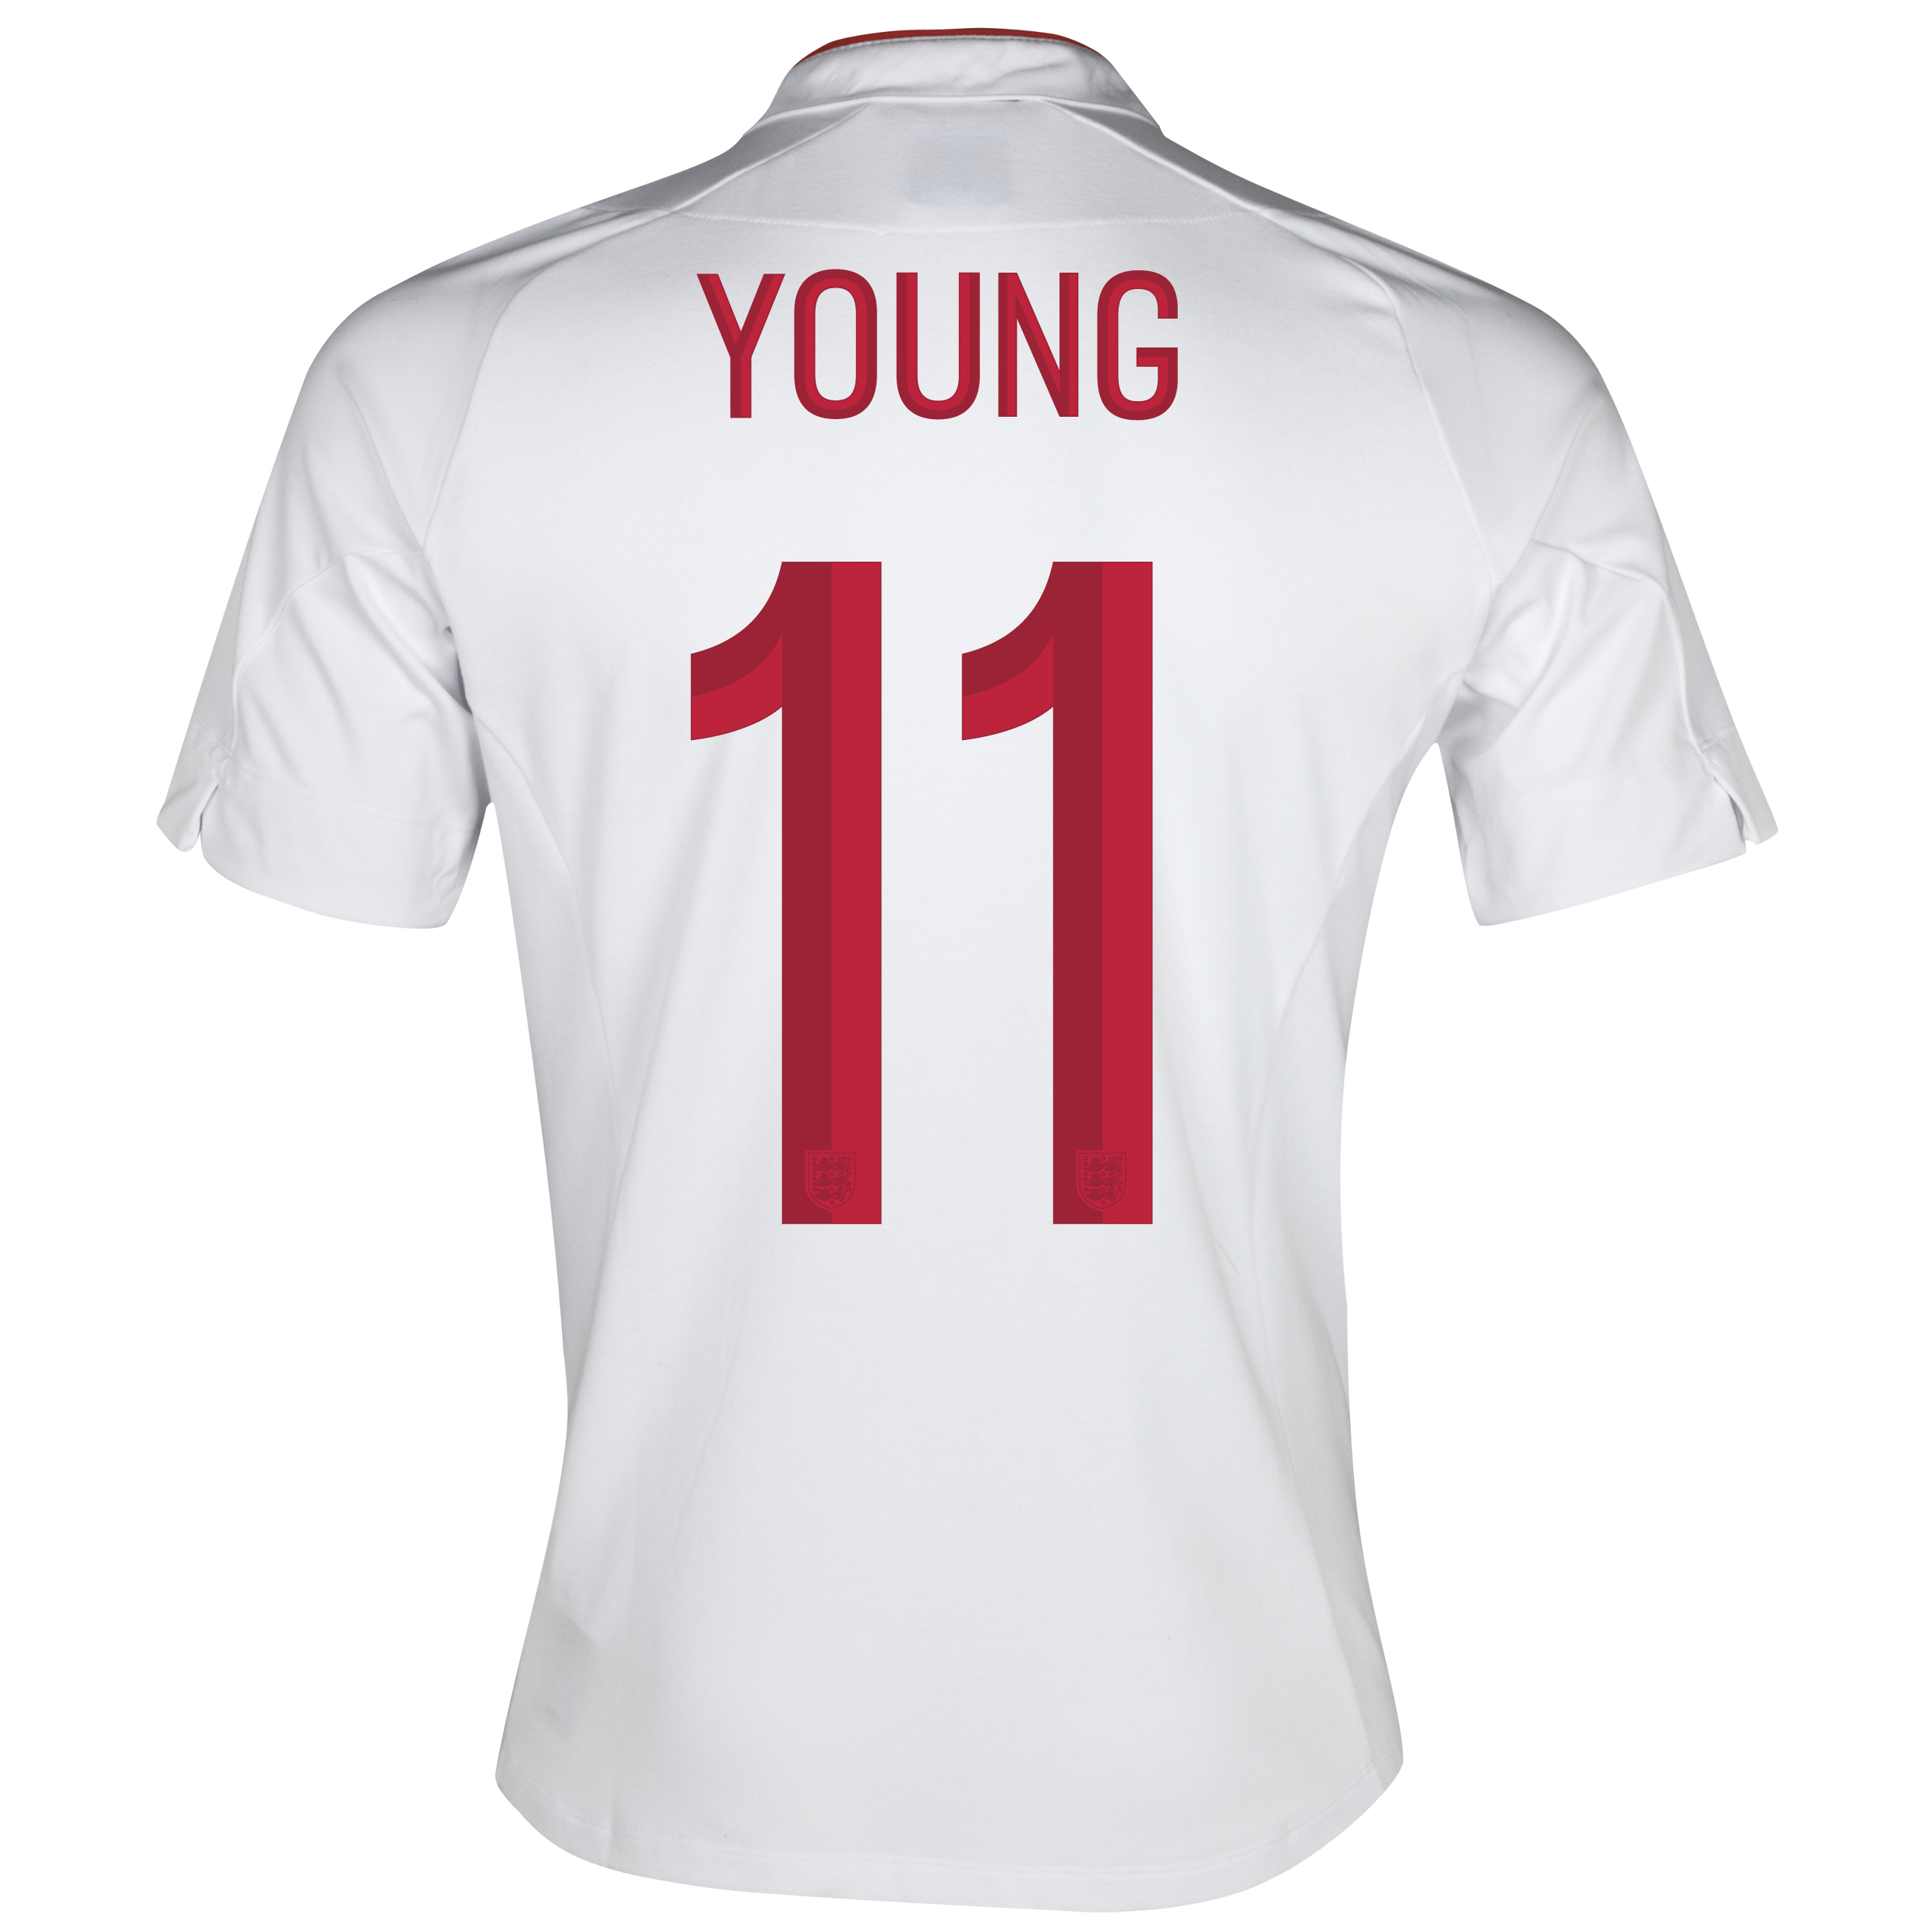 England Home Shirt 2012/13 - Boys with Young 11 printing